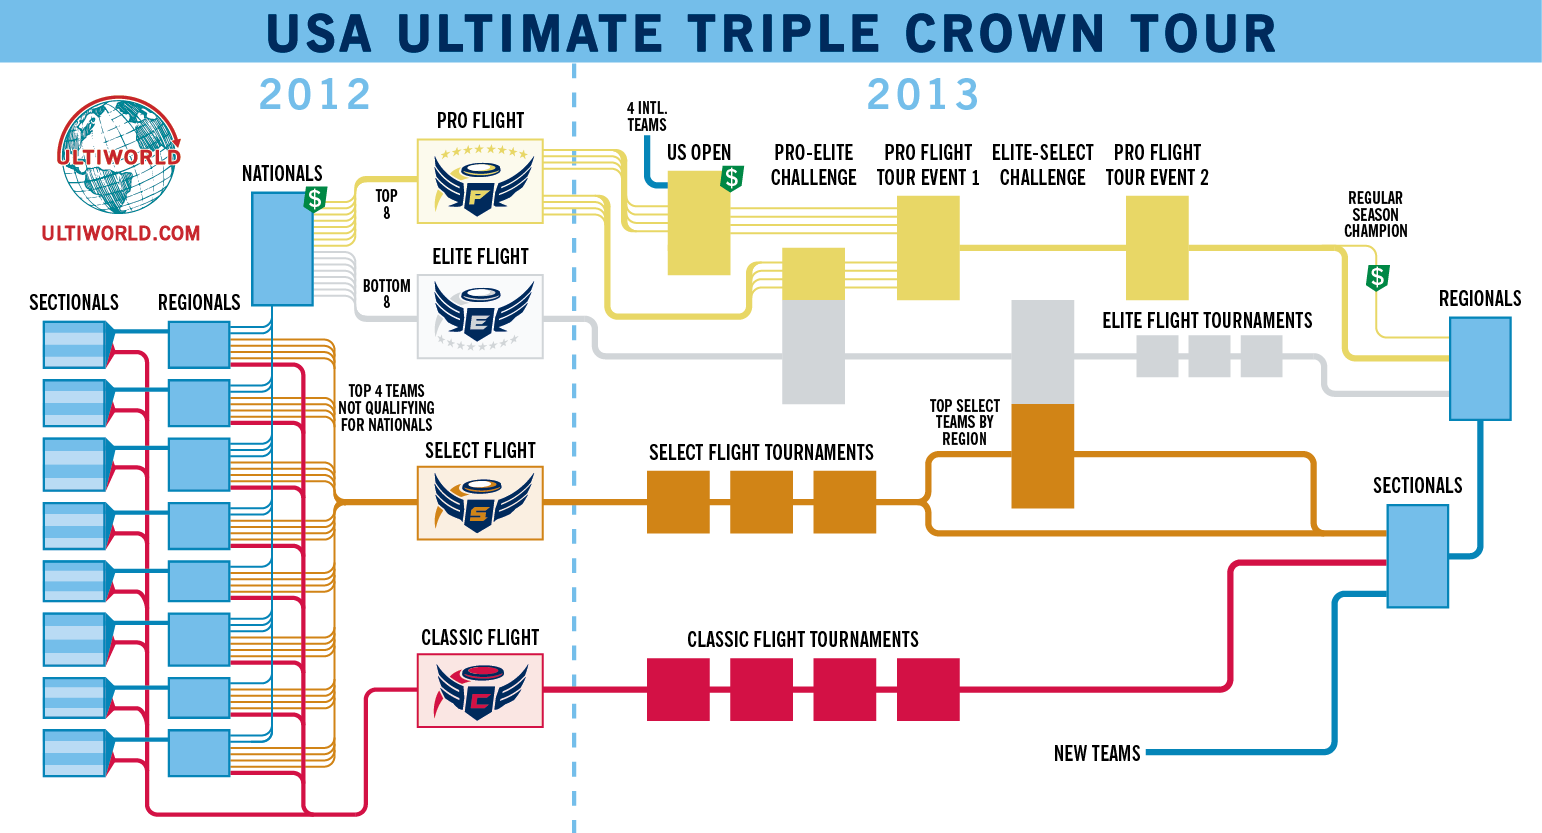 A flowchart of the USA Ultimate Triple Crown Tour structure.